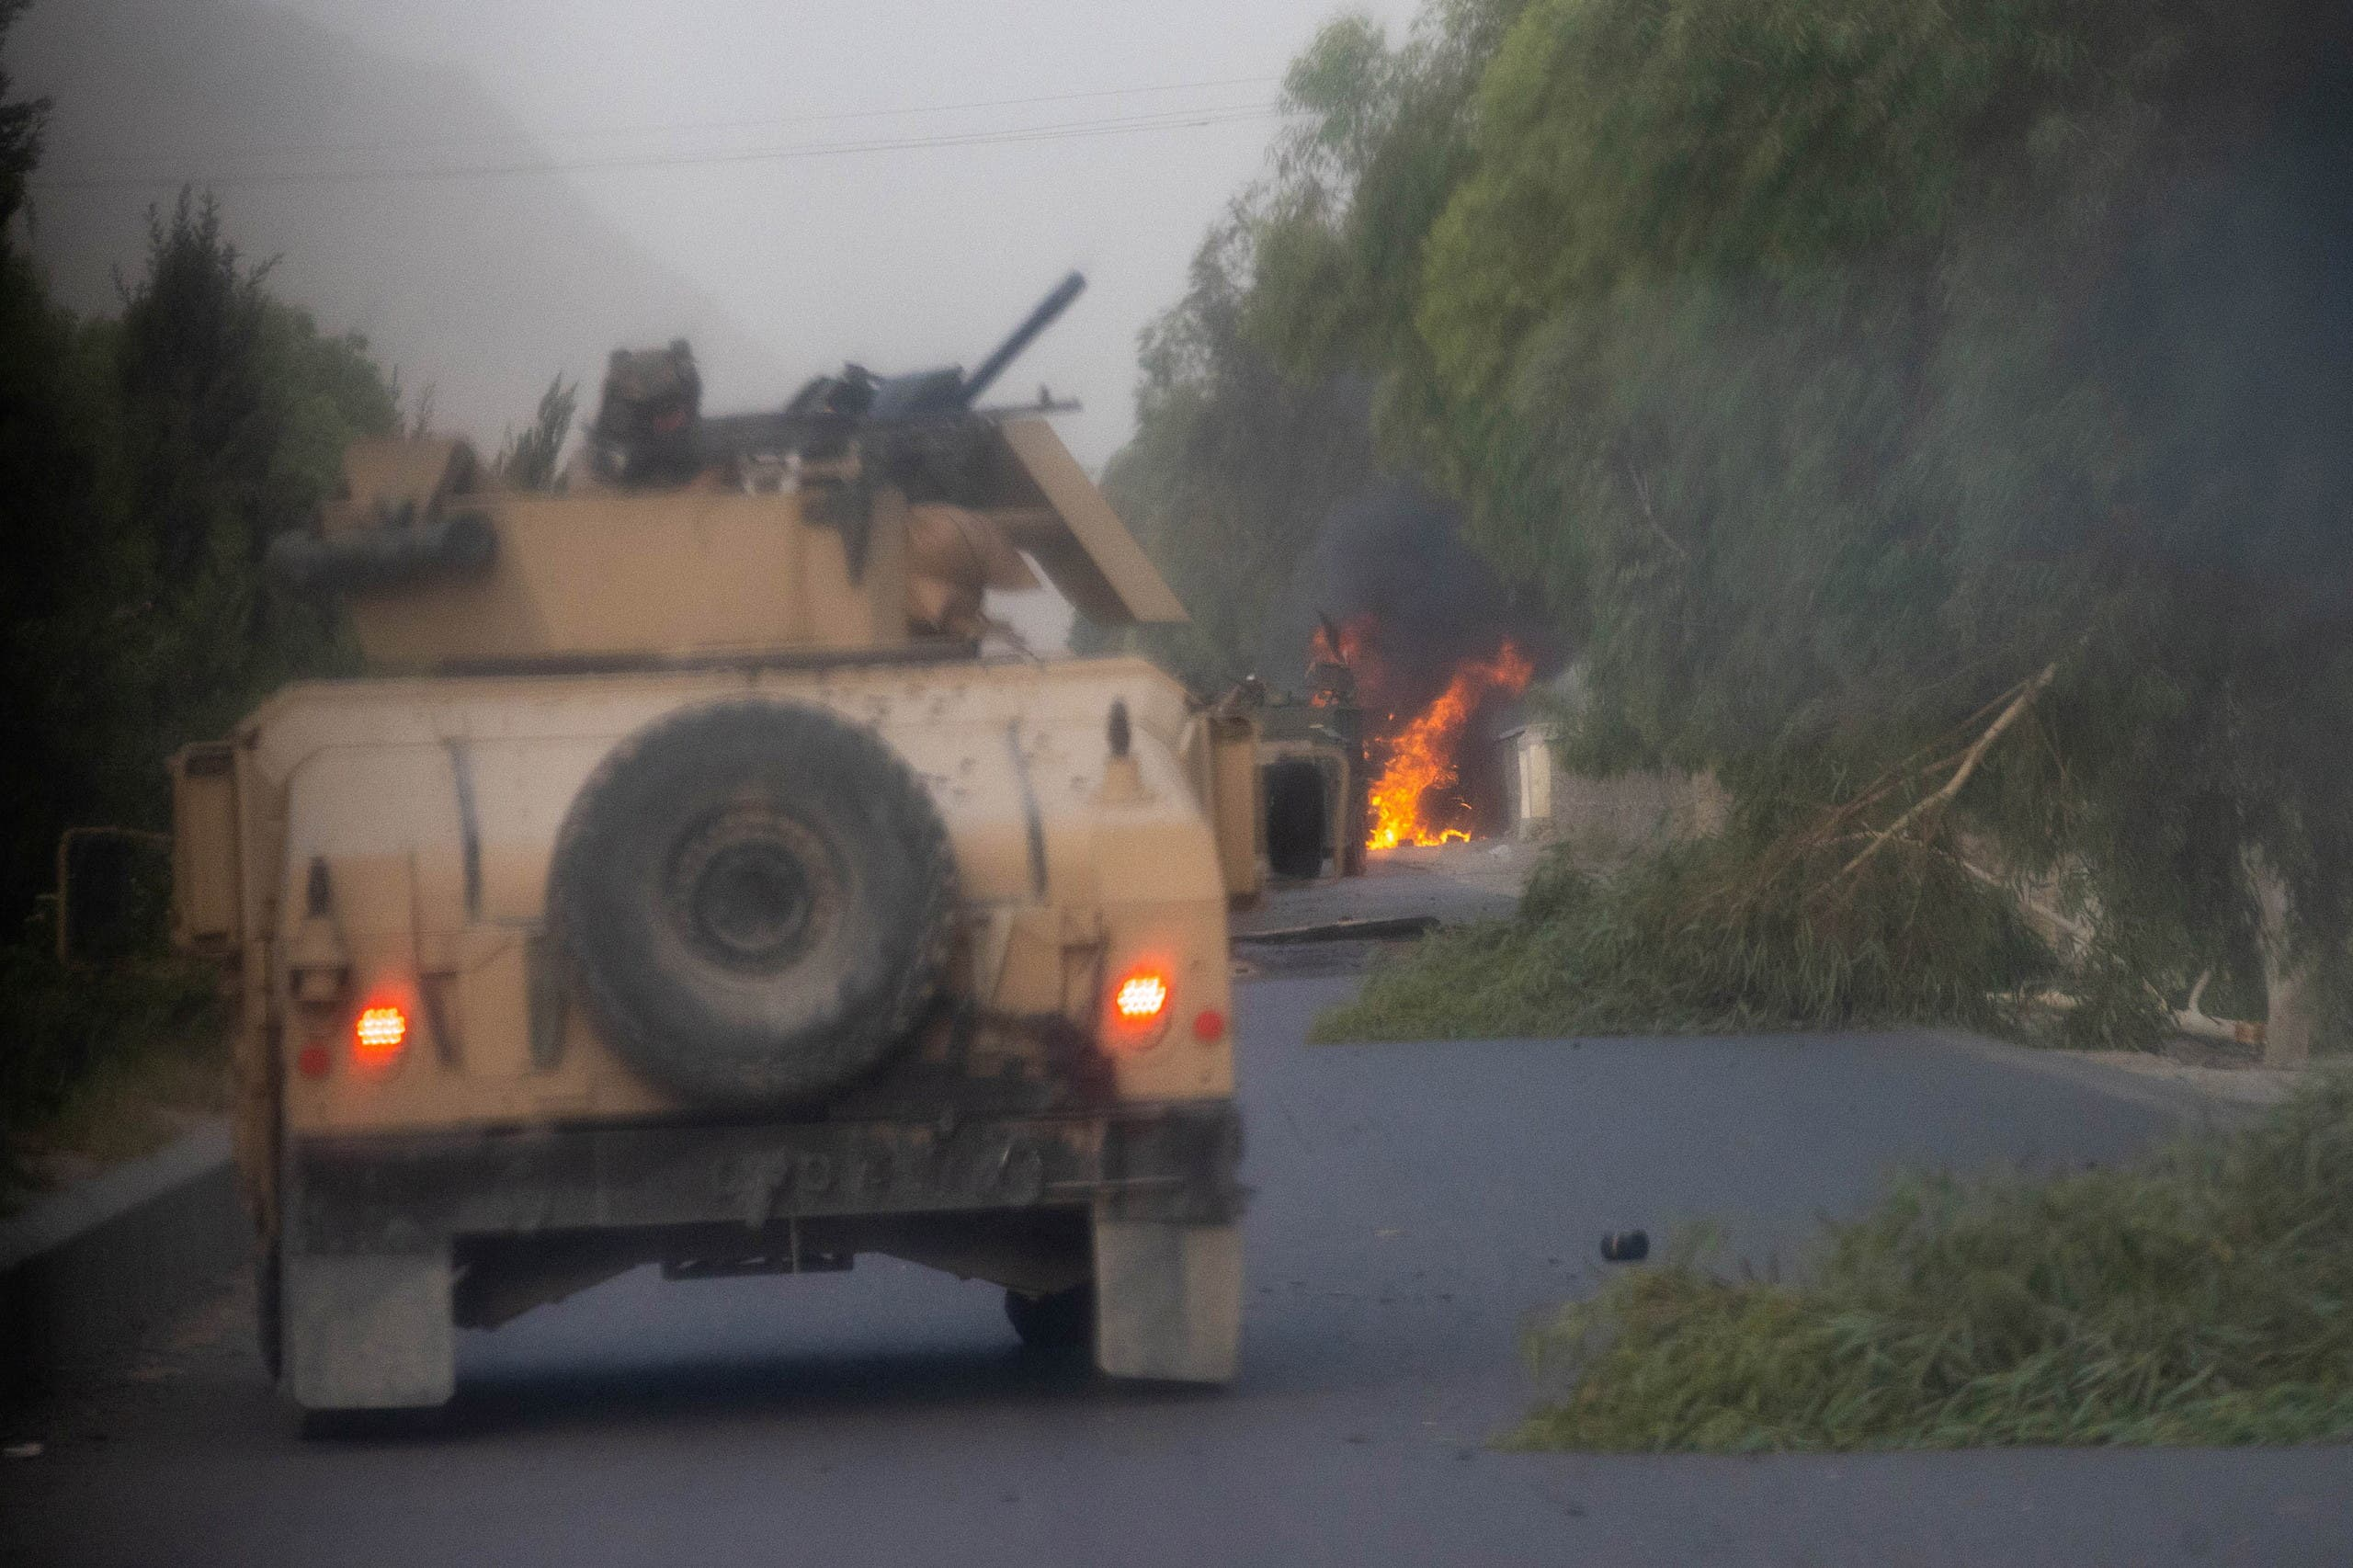 Humvees that belong to Afghan Special Forces are seen destroyed during heavy clashes with Taliban during the rescue mission of a police officer besieged at a check post, in Kandahar province, Afghanistan, July 13, 2021. (Reuters)